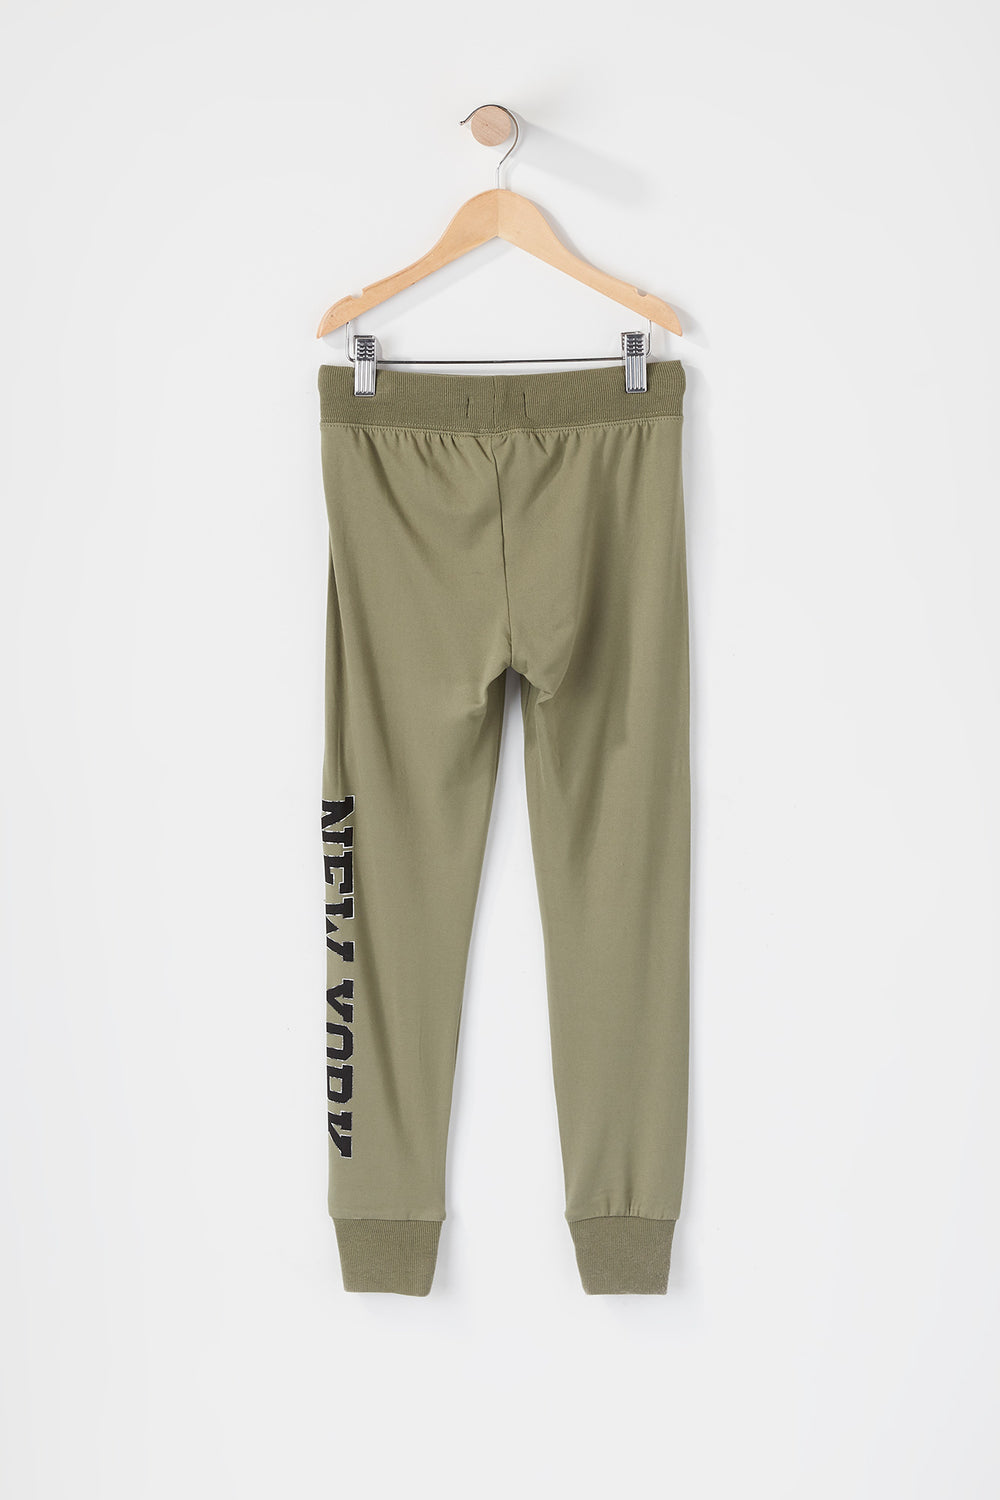 Girls Soft Graphic Jogger Hunter Green